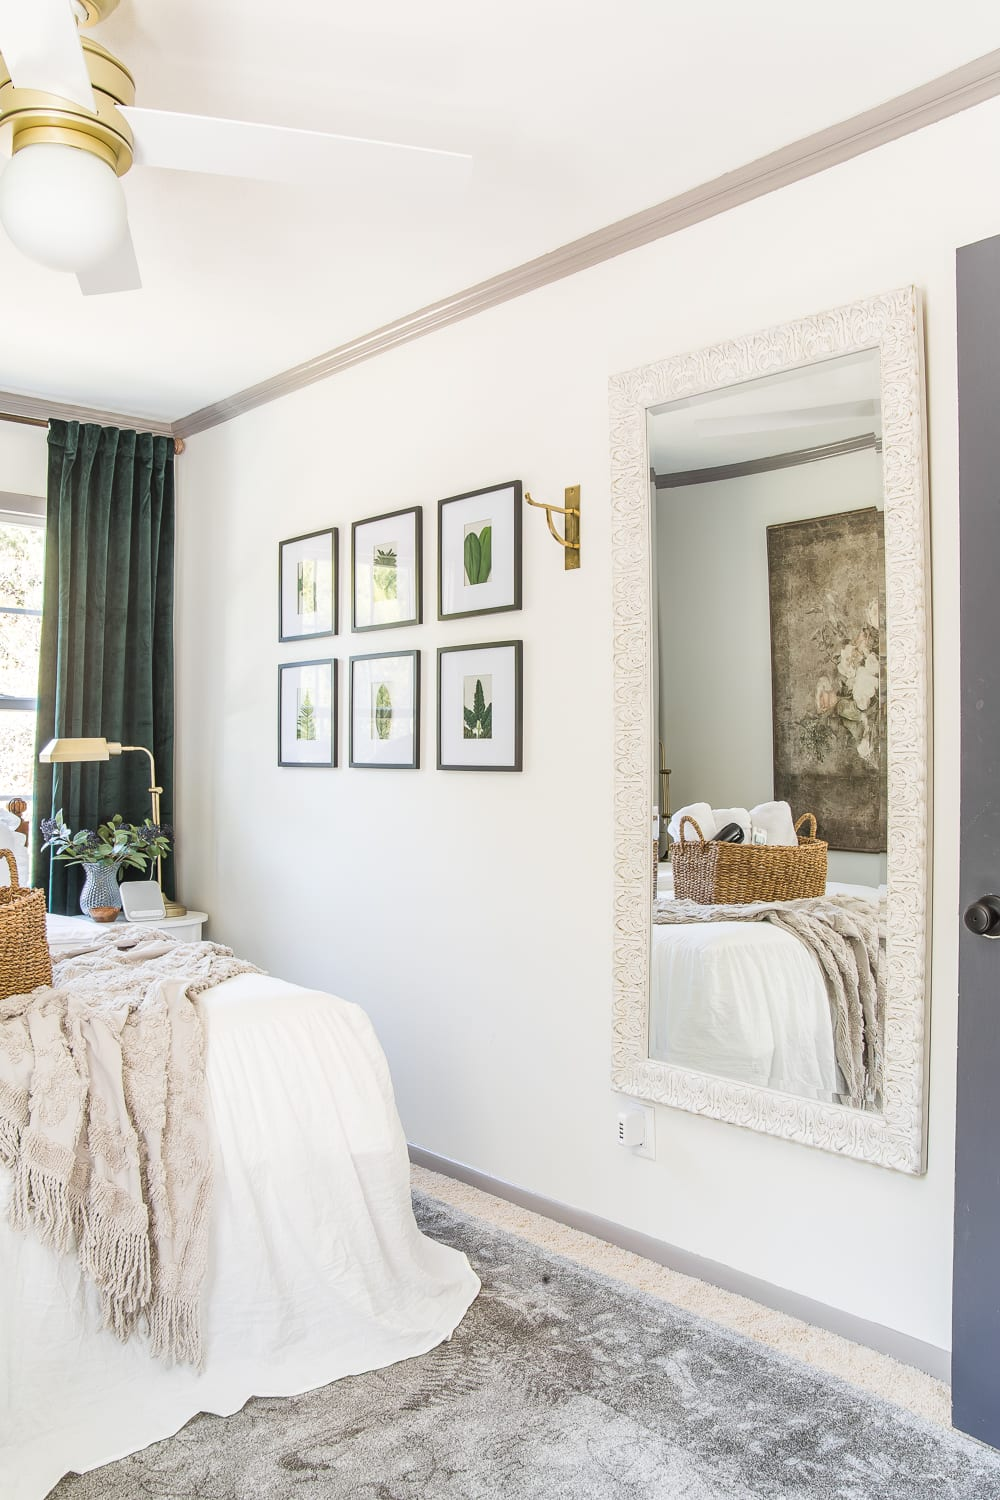 38 Guest Bedroom Essentials | Hang up a full-length mirror and keep a wall hook handy for robes, towels, or bags.